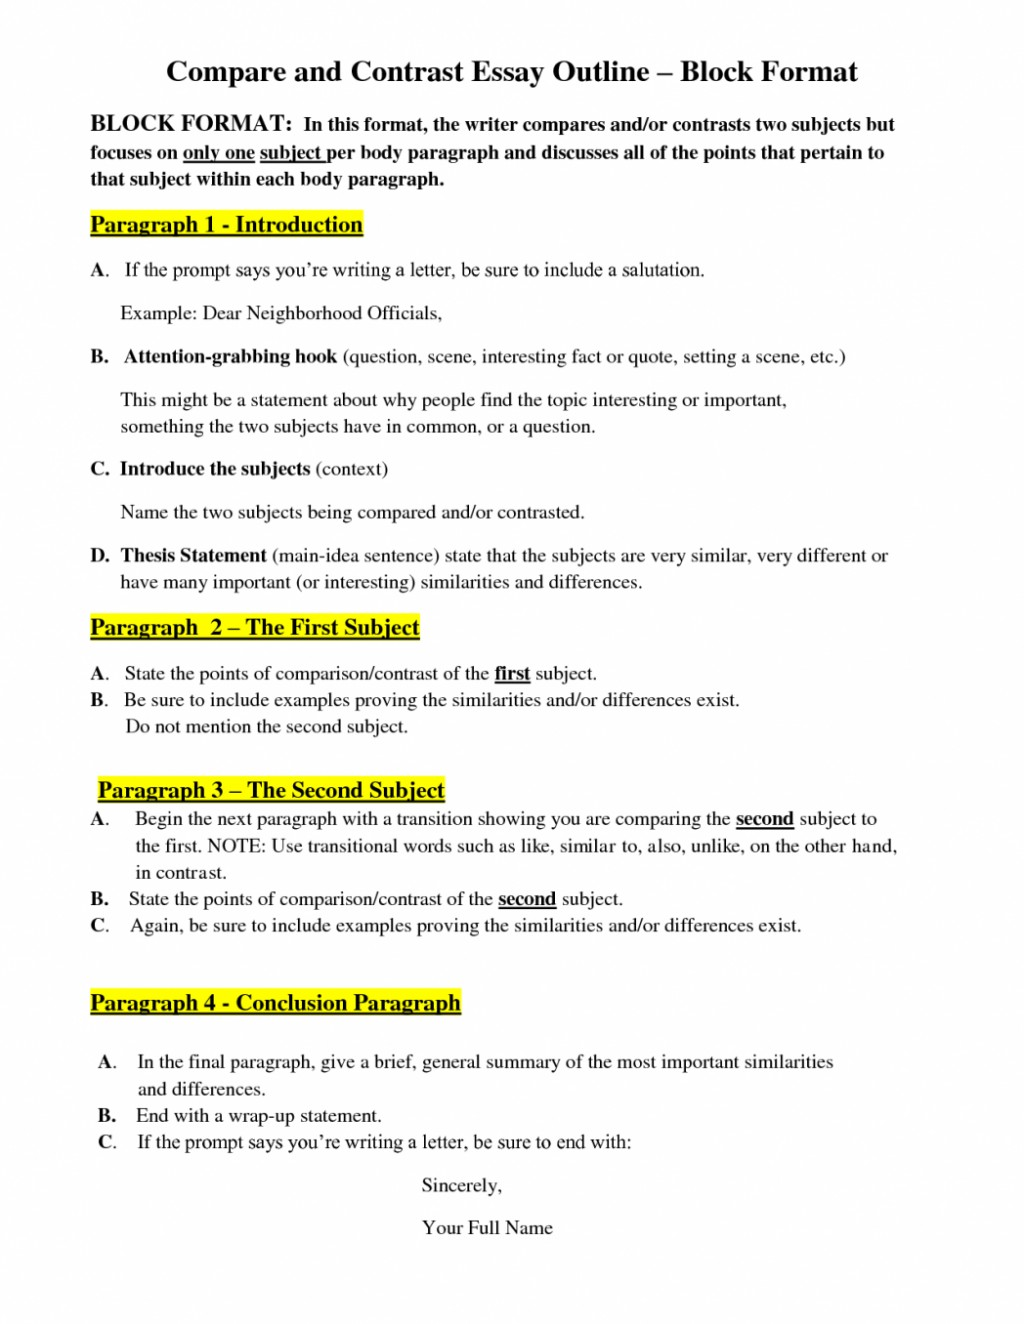 007 Essay Example Essays Compare And Contrasts For Year College Vs Outline Block 1048x1356 Comparison Best Contrast Sample Free Examples Middle School Samples High Pdf Large